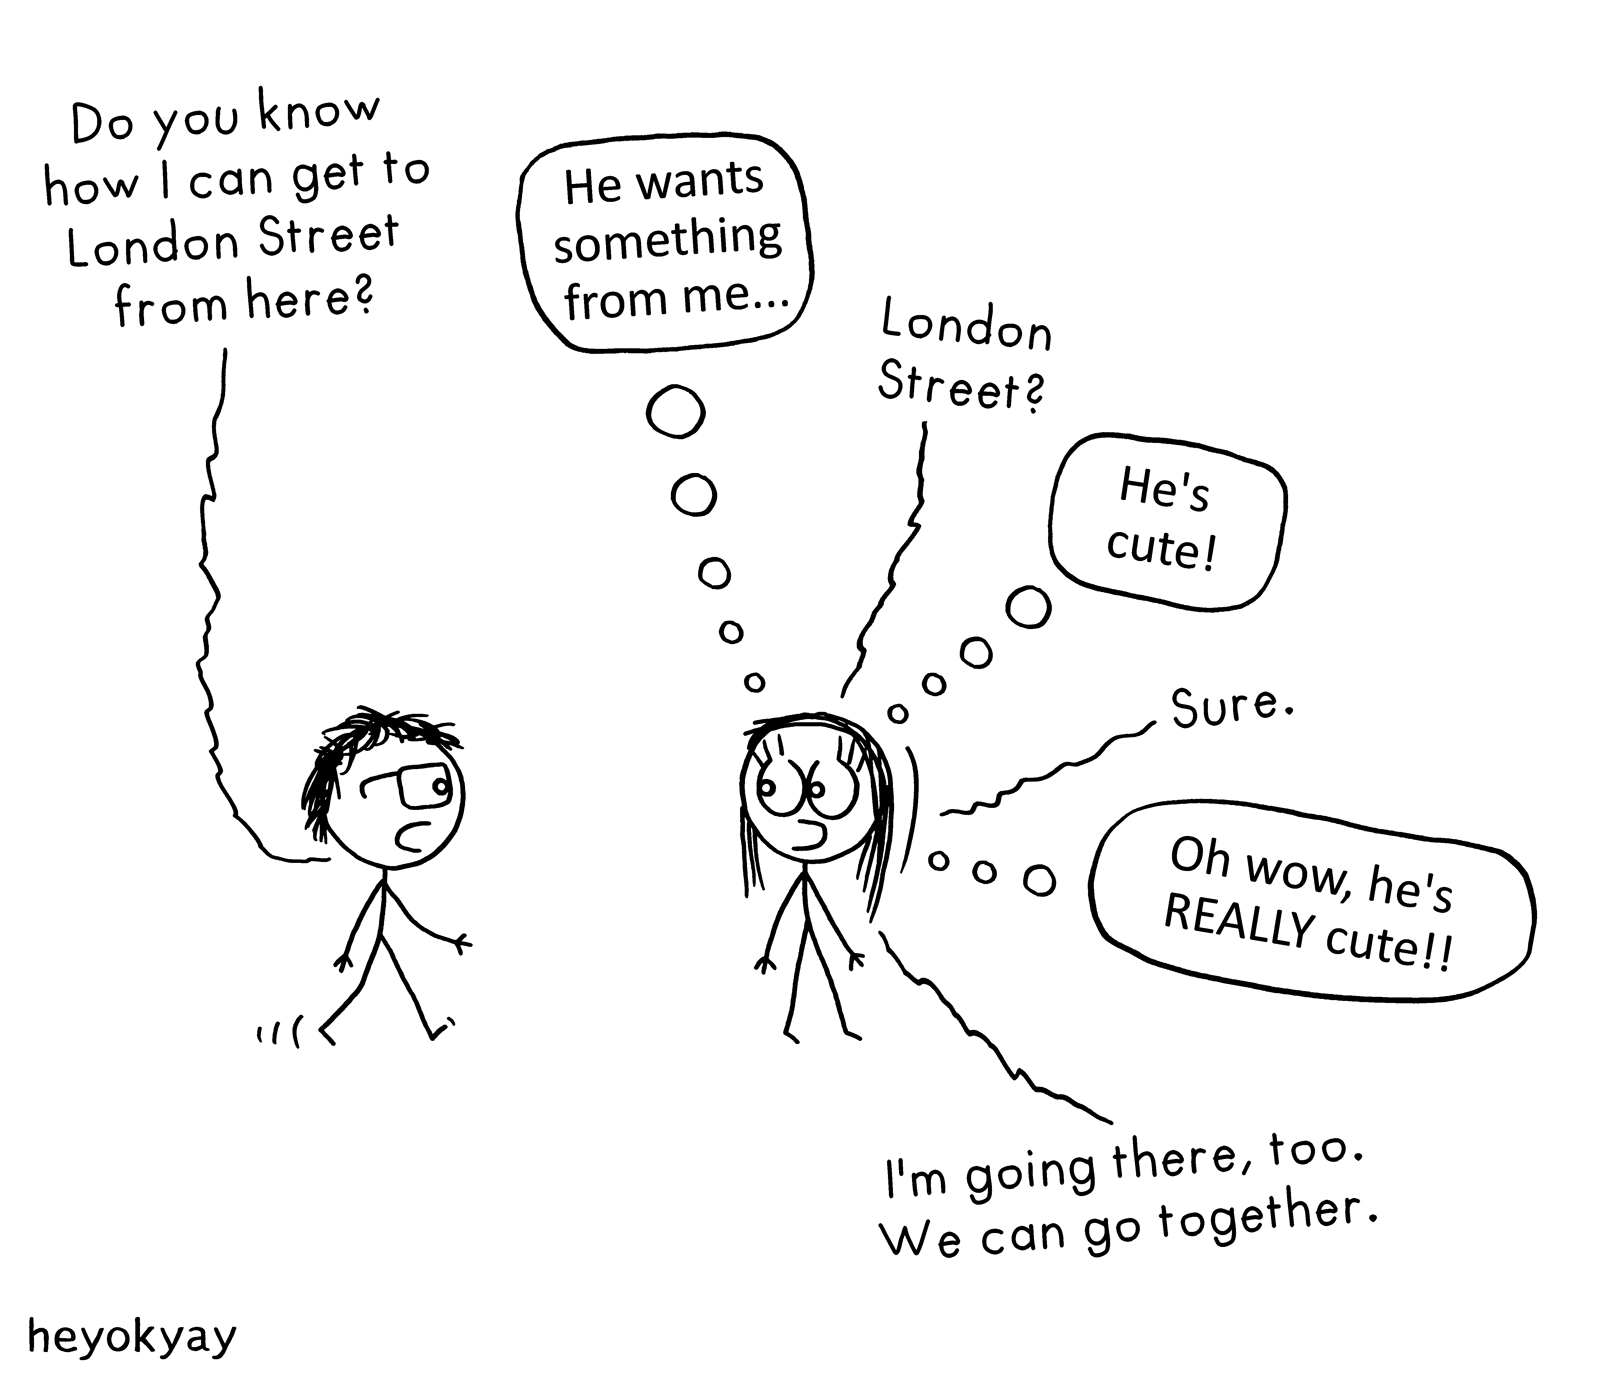 London Street heyokyay comic